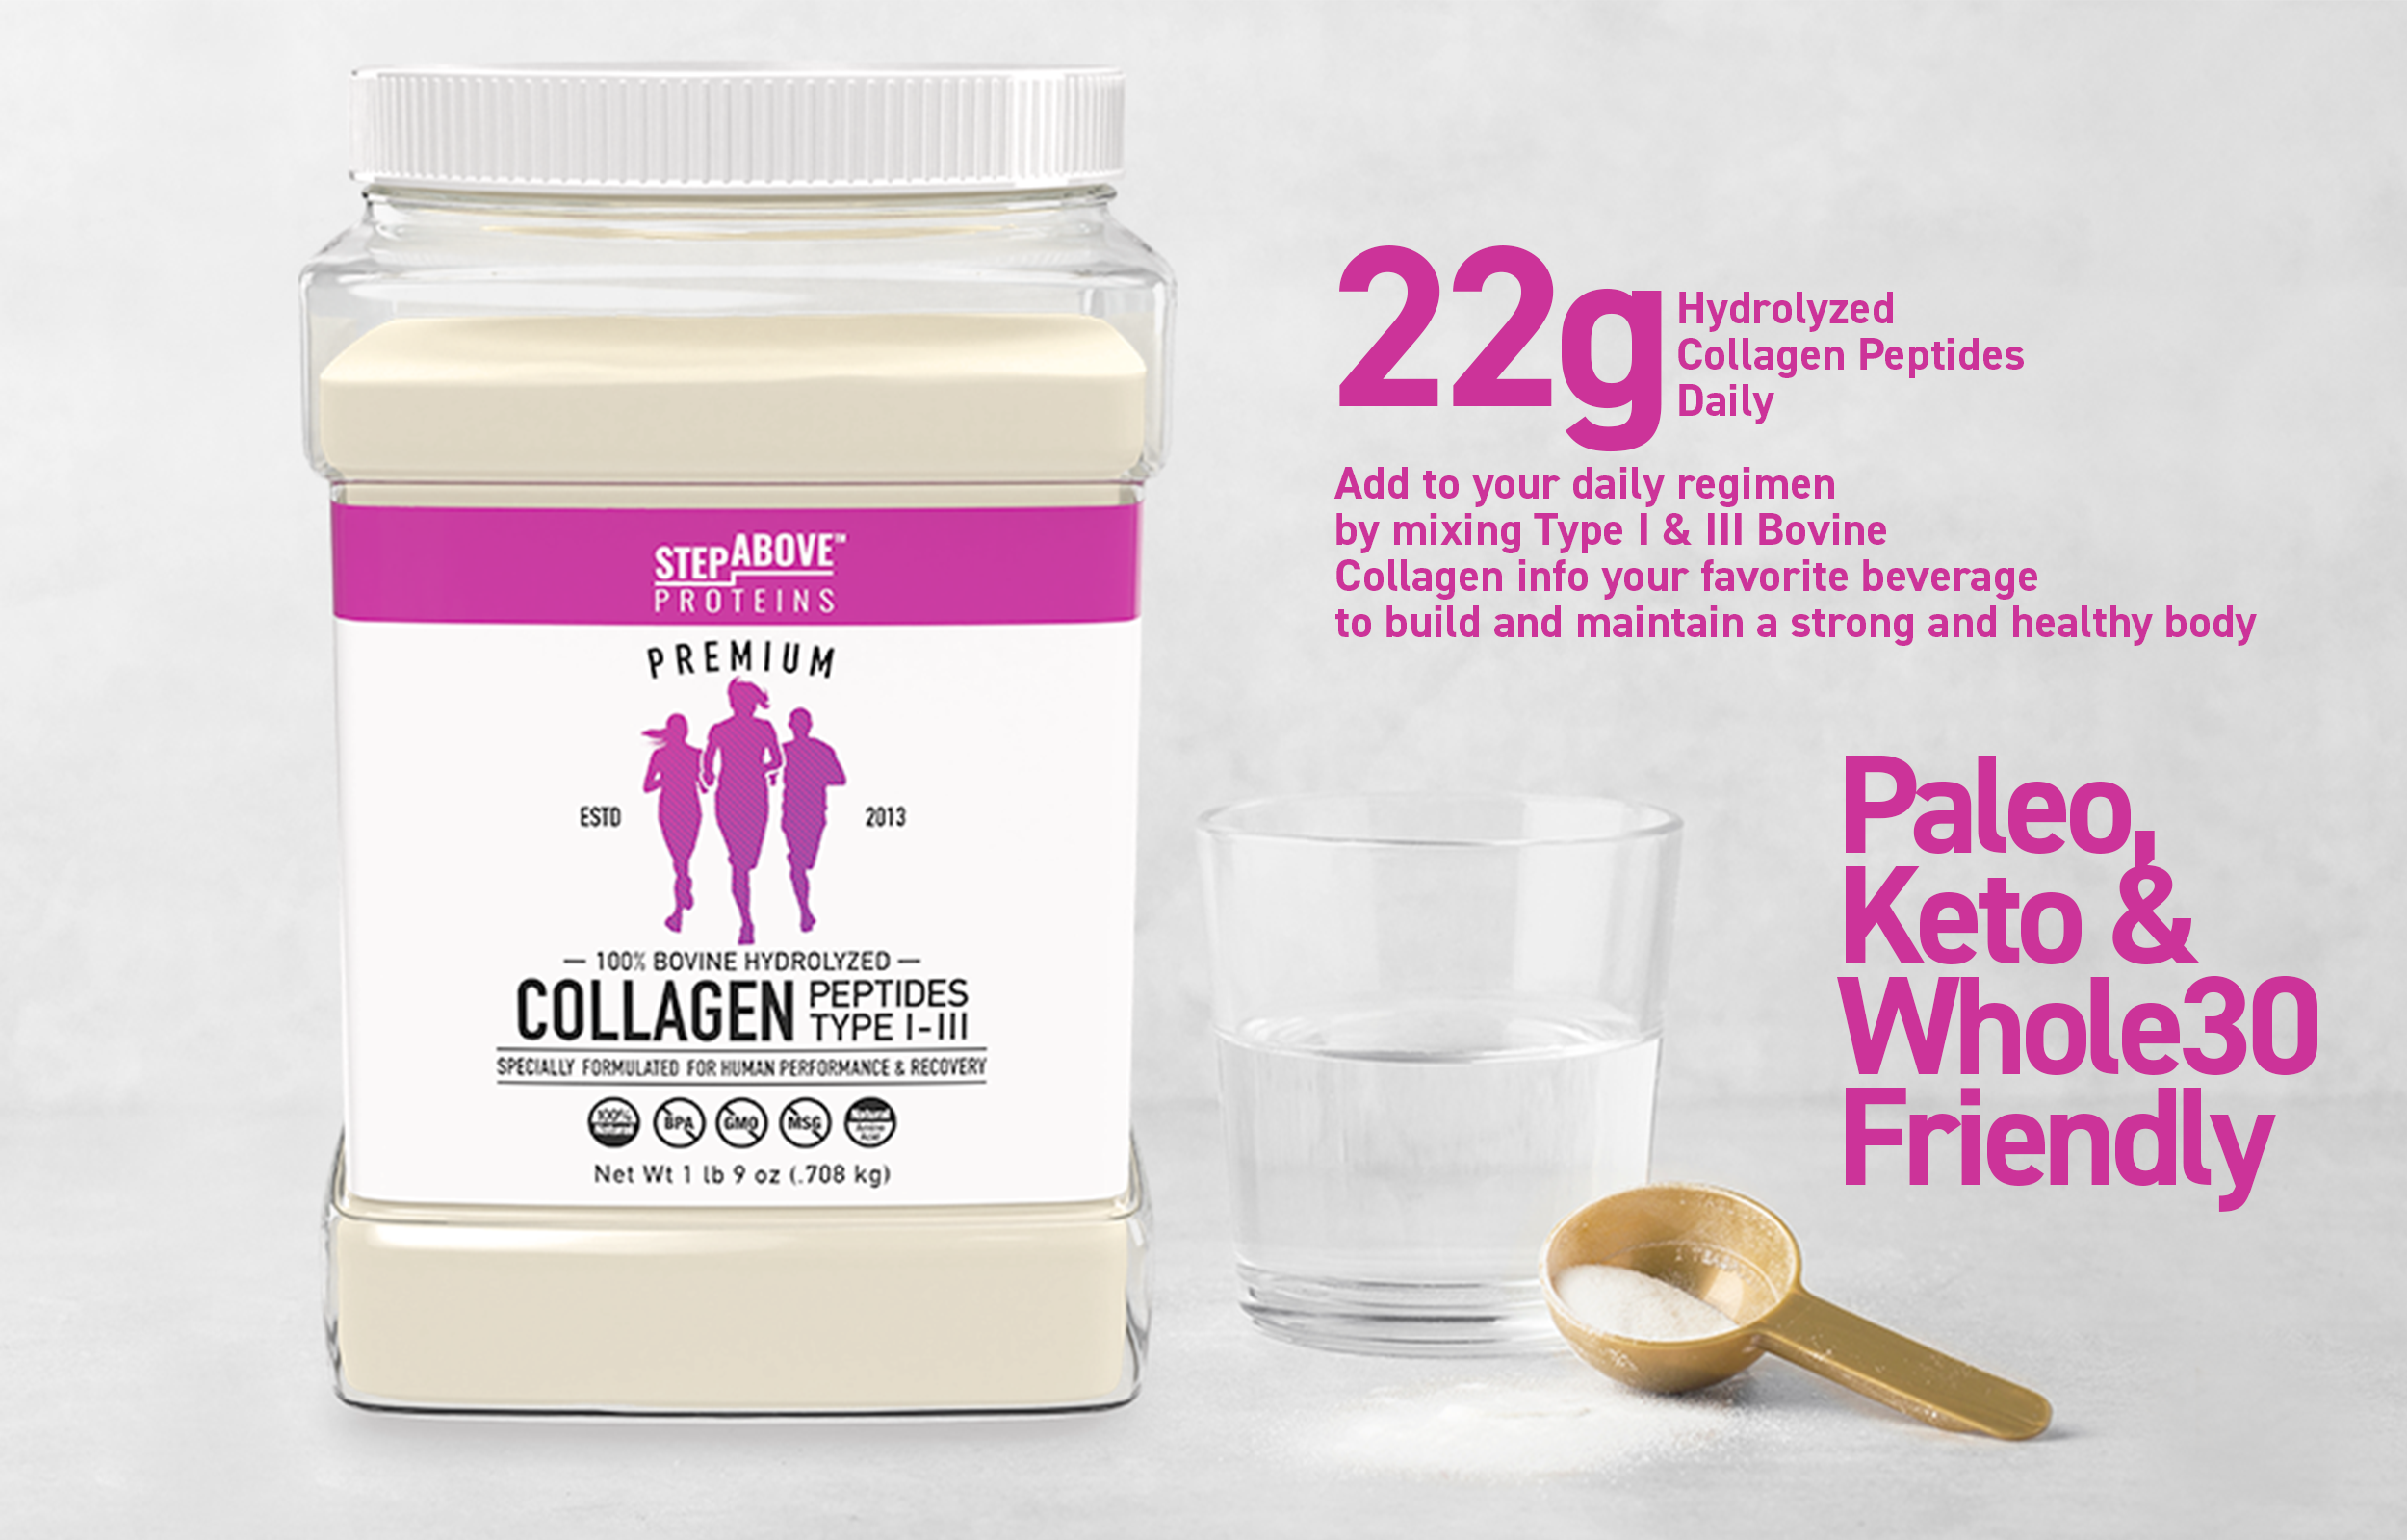 Package Image with water glass and scoop. 22grams of Hydrolyzed Collagen Peptides Daily. Add to your daily regimen by mixing Type 1 and 3 Bovine collagen into your favorite beverage to build and maintain a strong and healthy body.